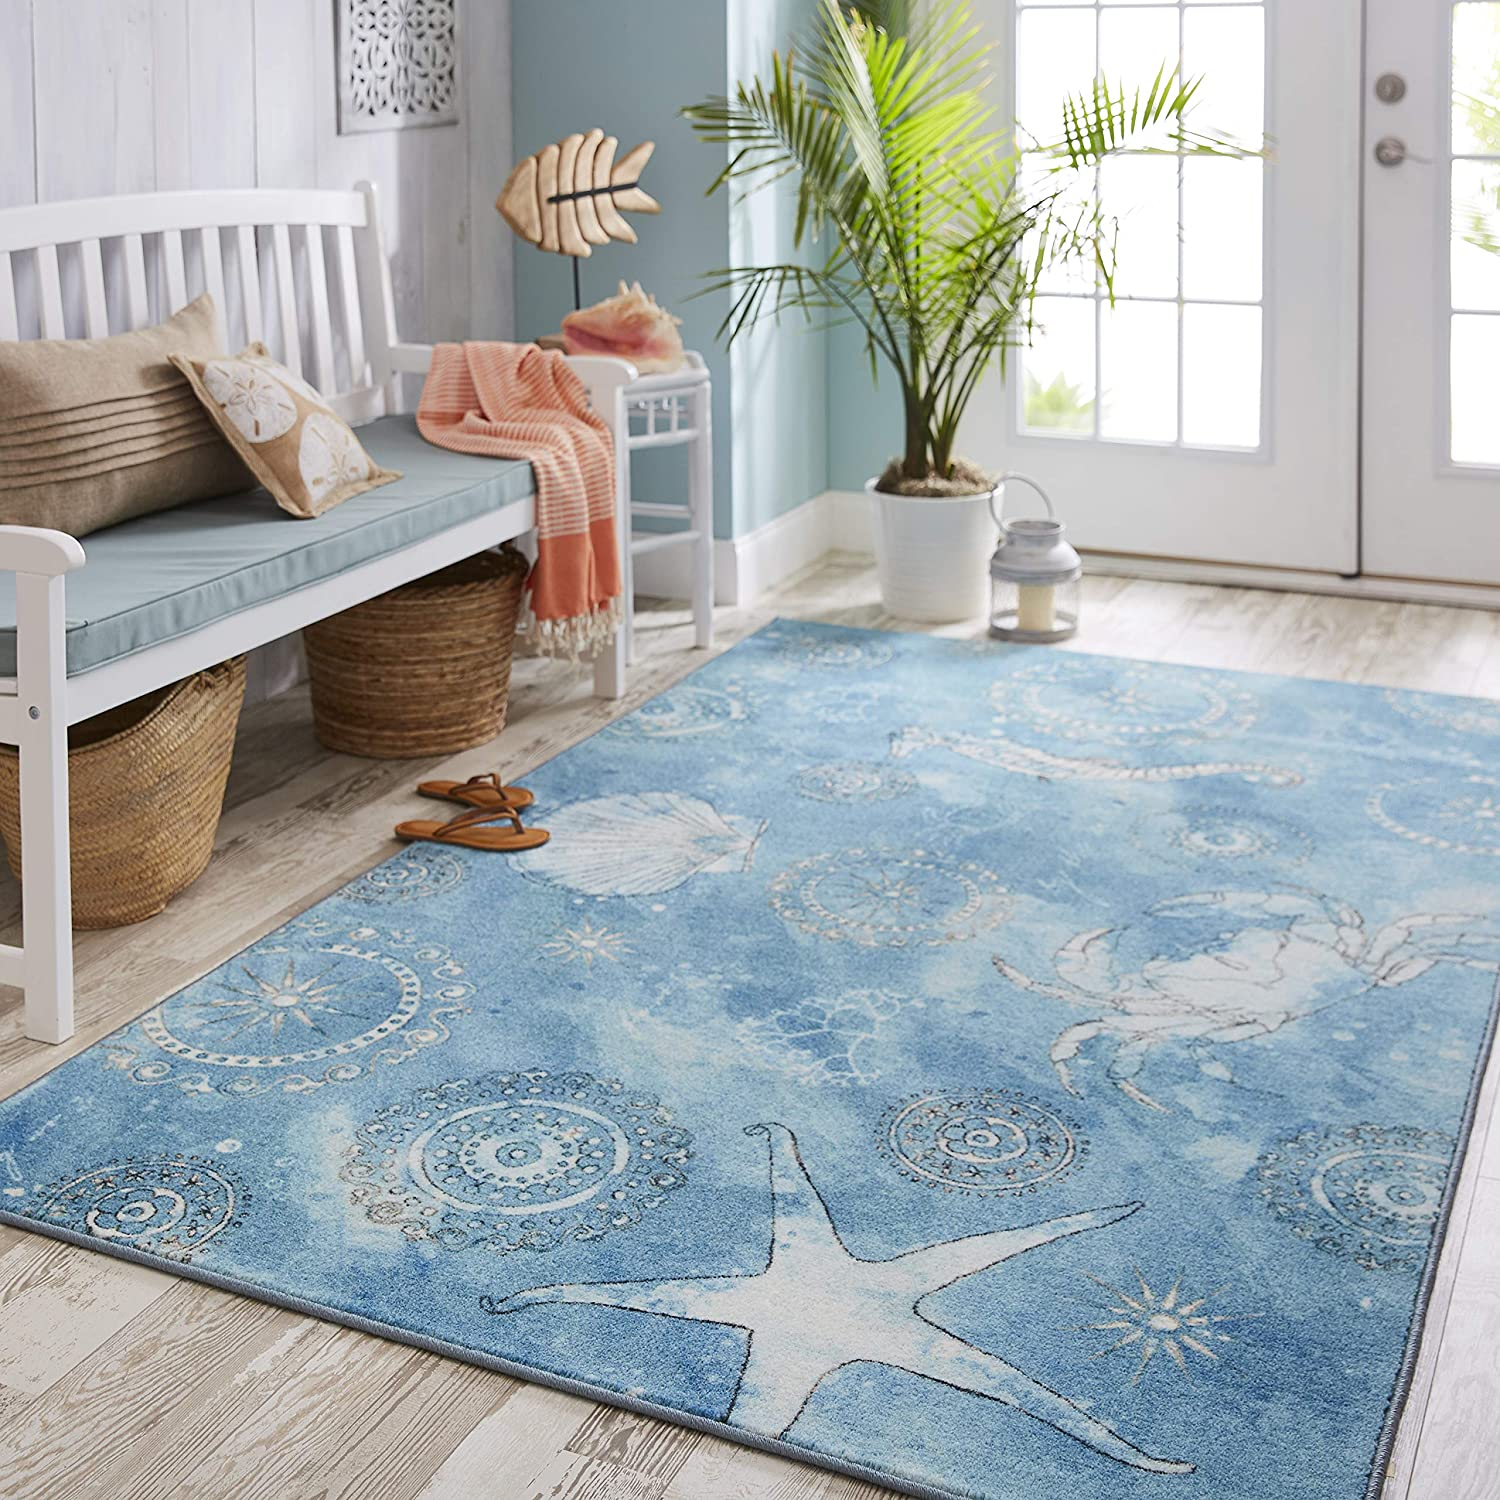 Mohawk Z0307 A446 060096 EC Area Rug, 5'x8', Coastal Splash